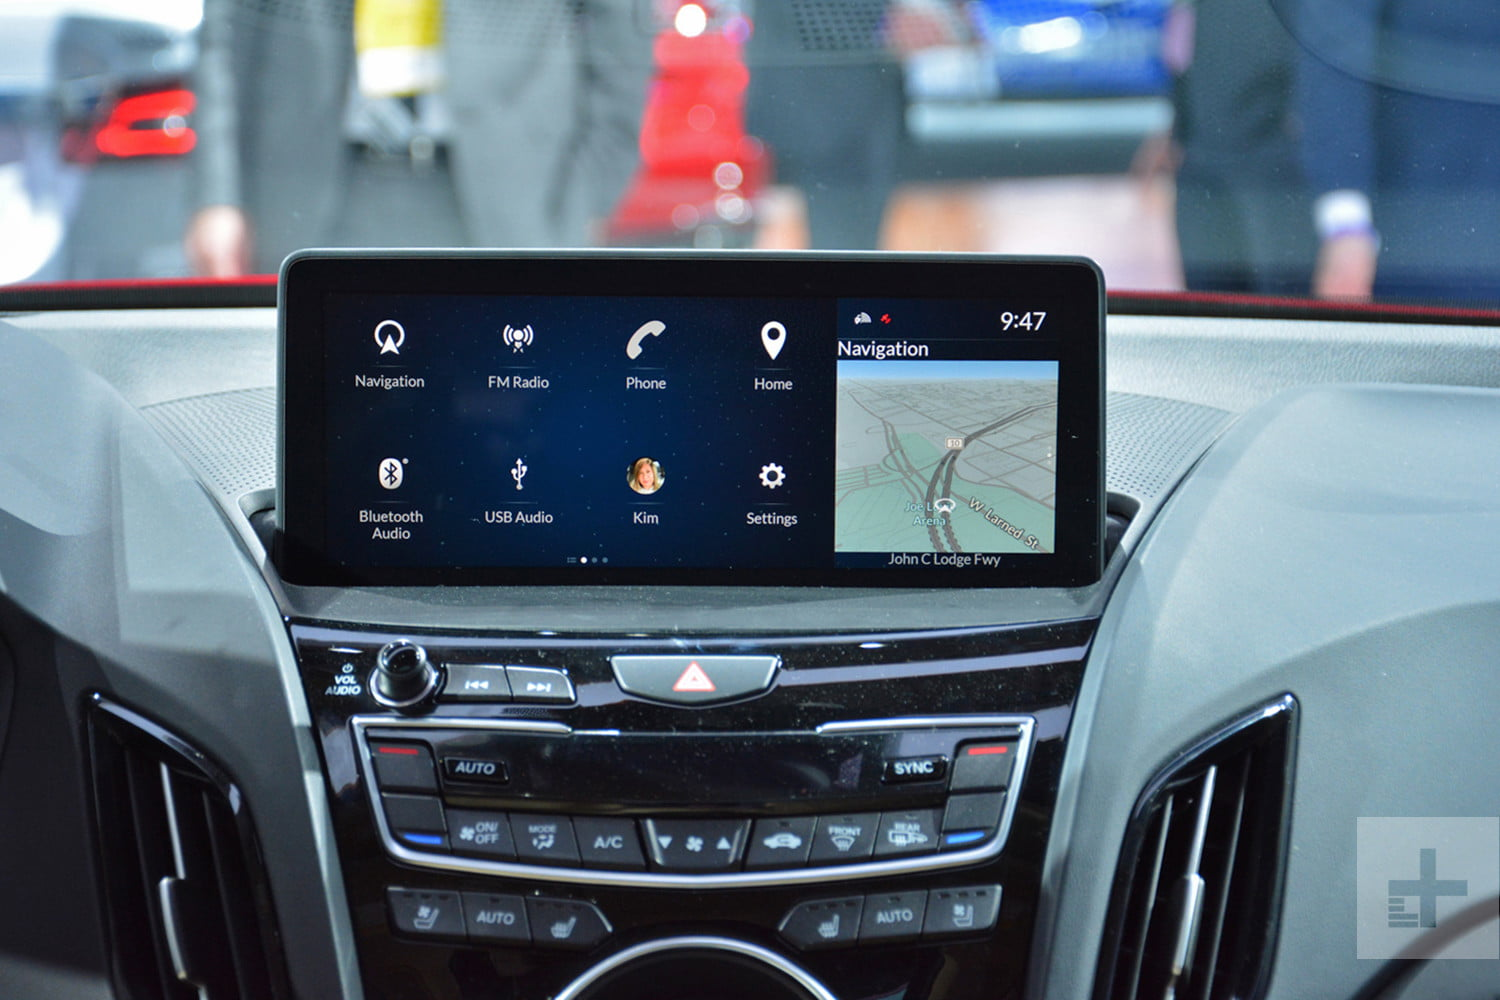 acura true touchpad infotainment system review rg rdx prototype 2